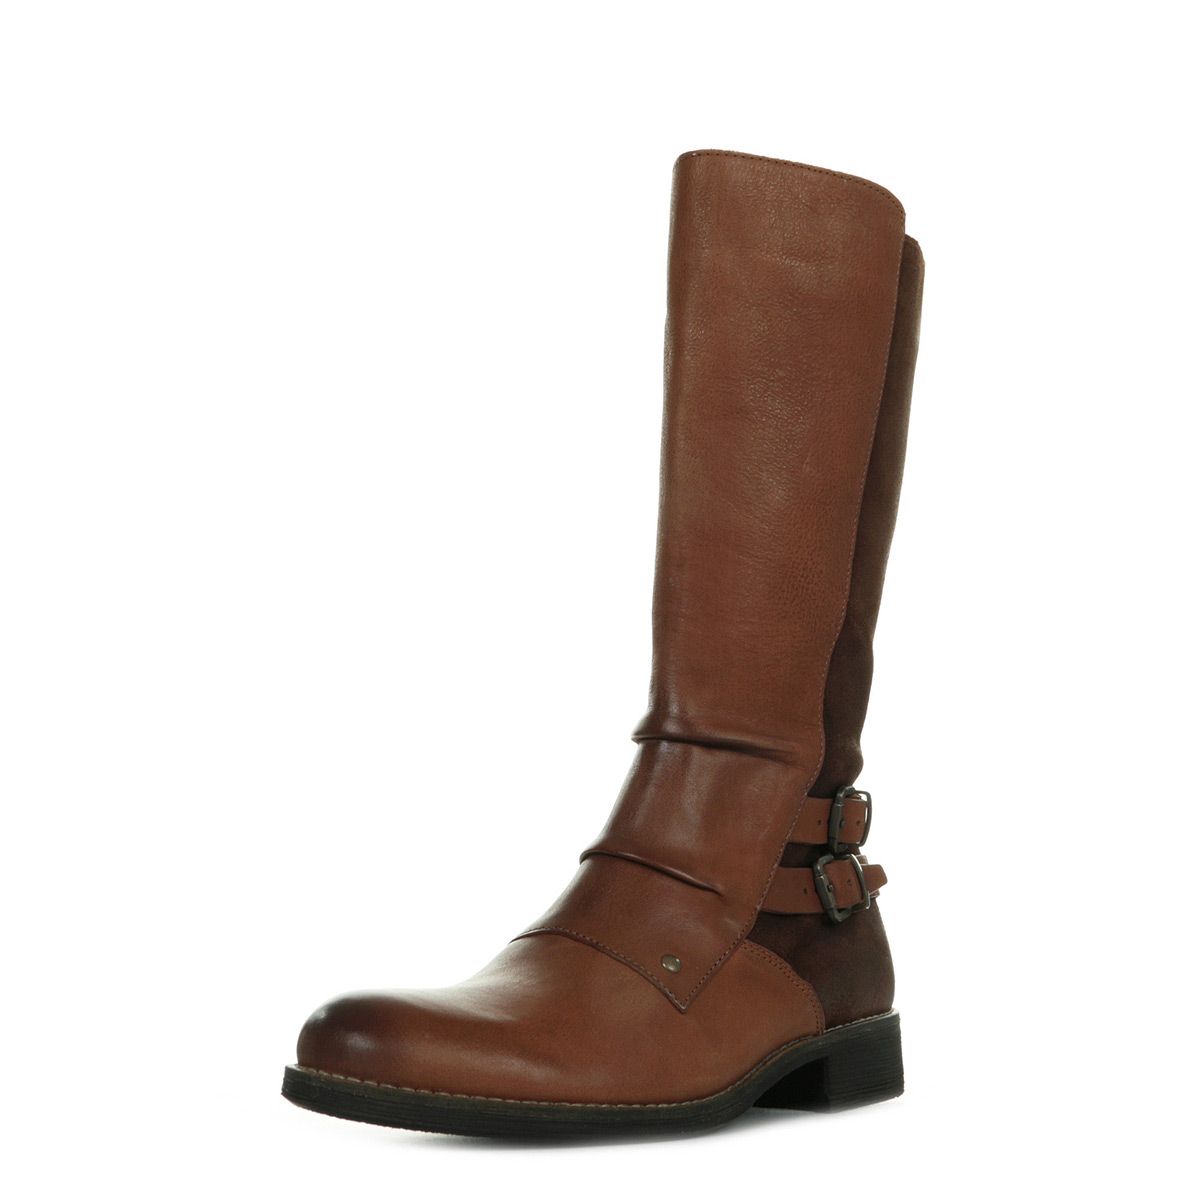 bb10bf0e268a1b Kickers Smacking Marron 5797305091, Bottes femme